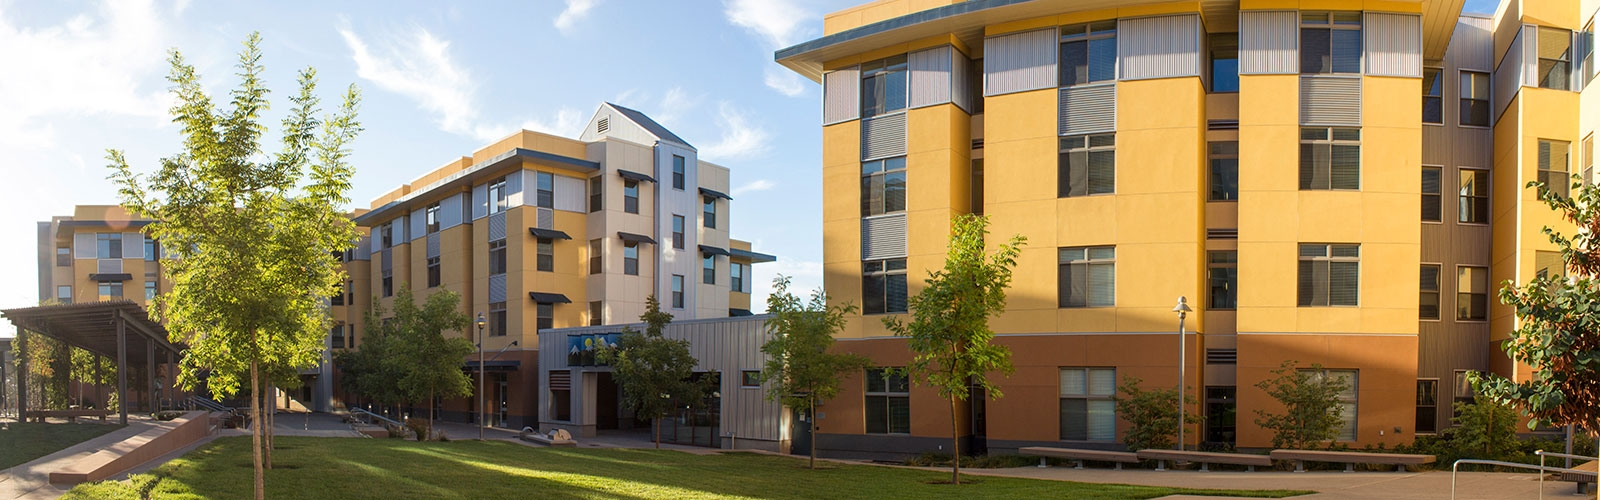 UC Merced residence halls offer an array of living options with services that help students adjust to college life and make the most of their experience.